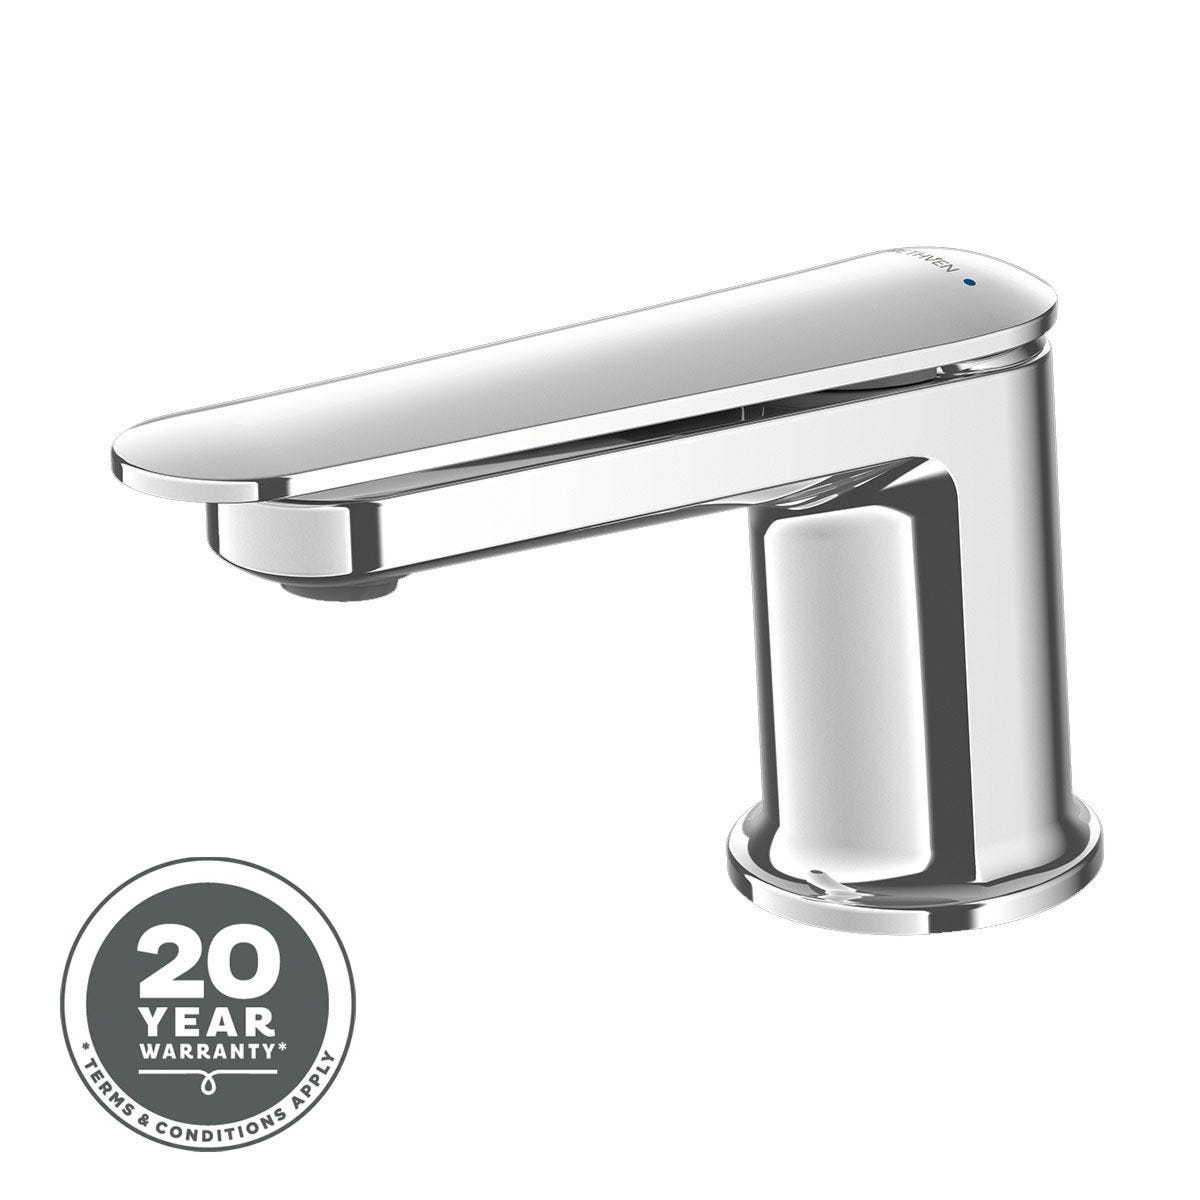 Methven Aio Basin Mixer Tap